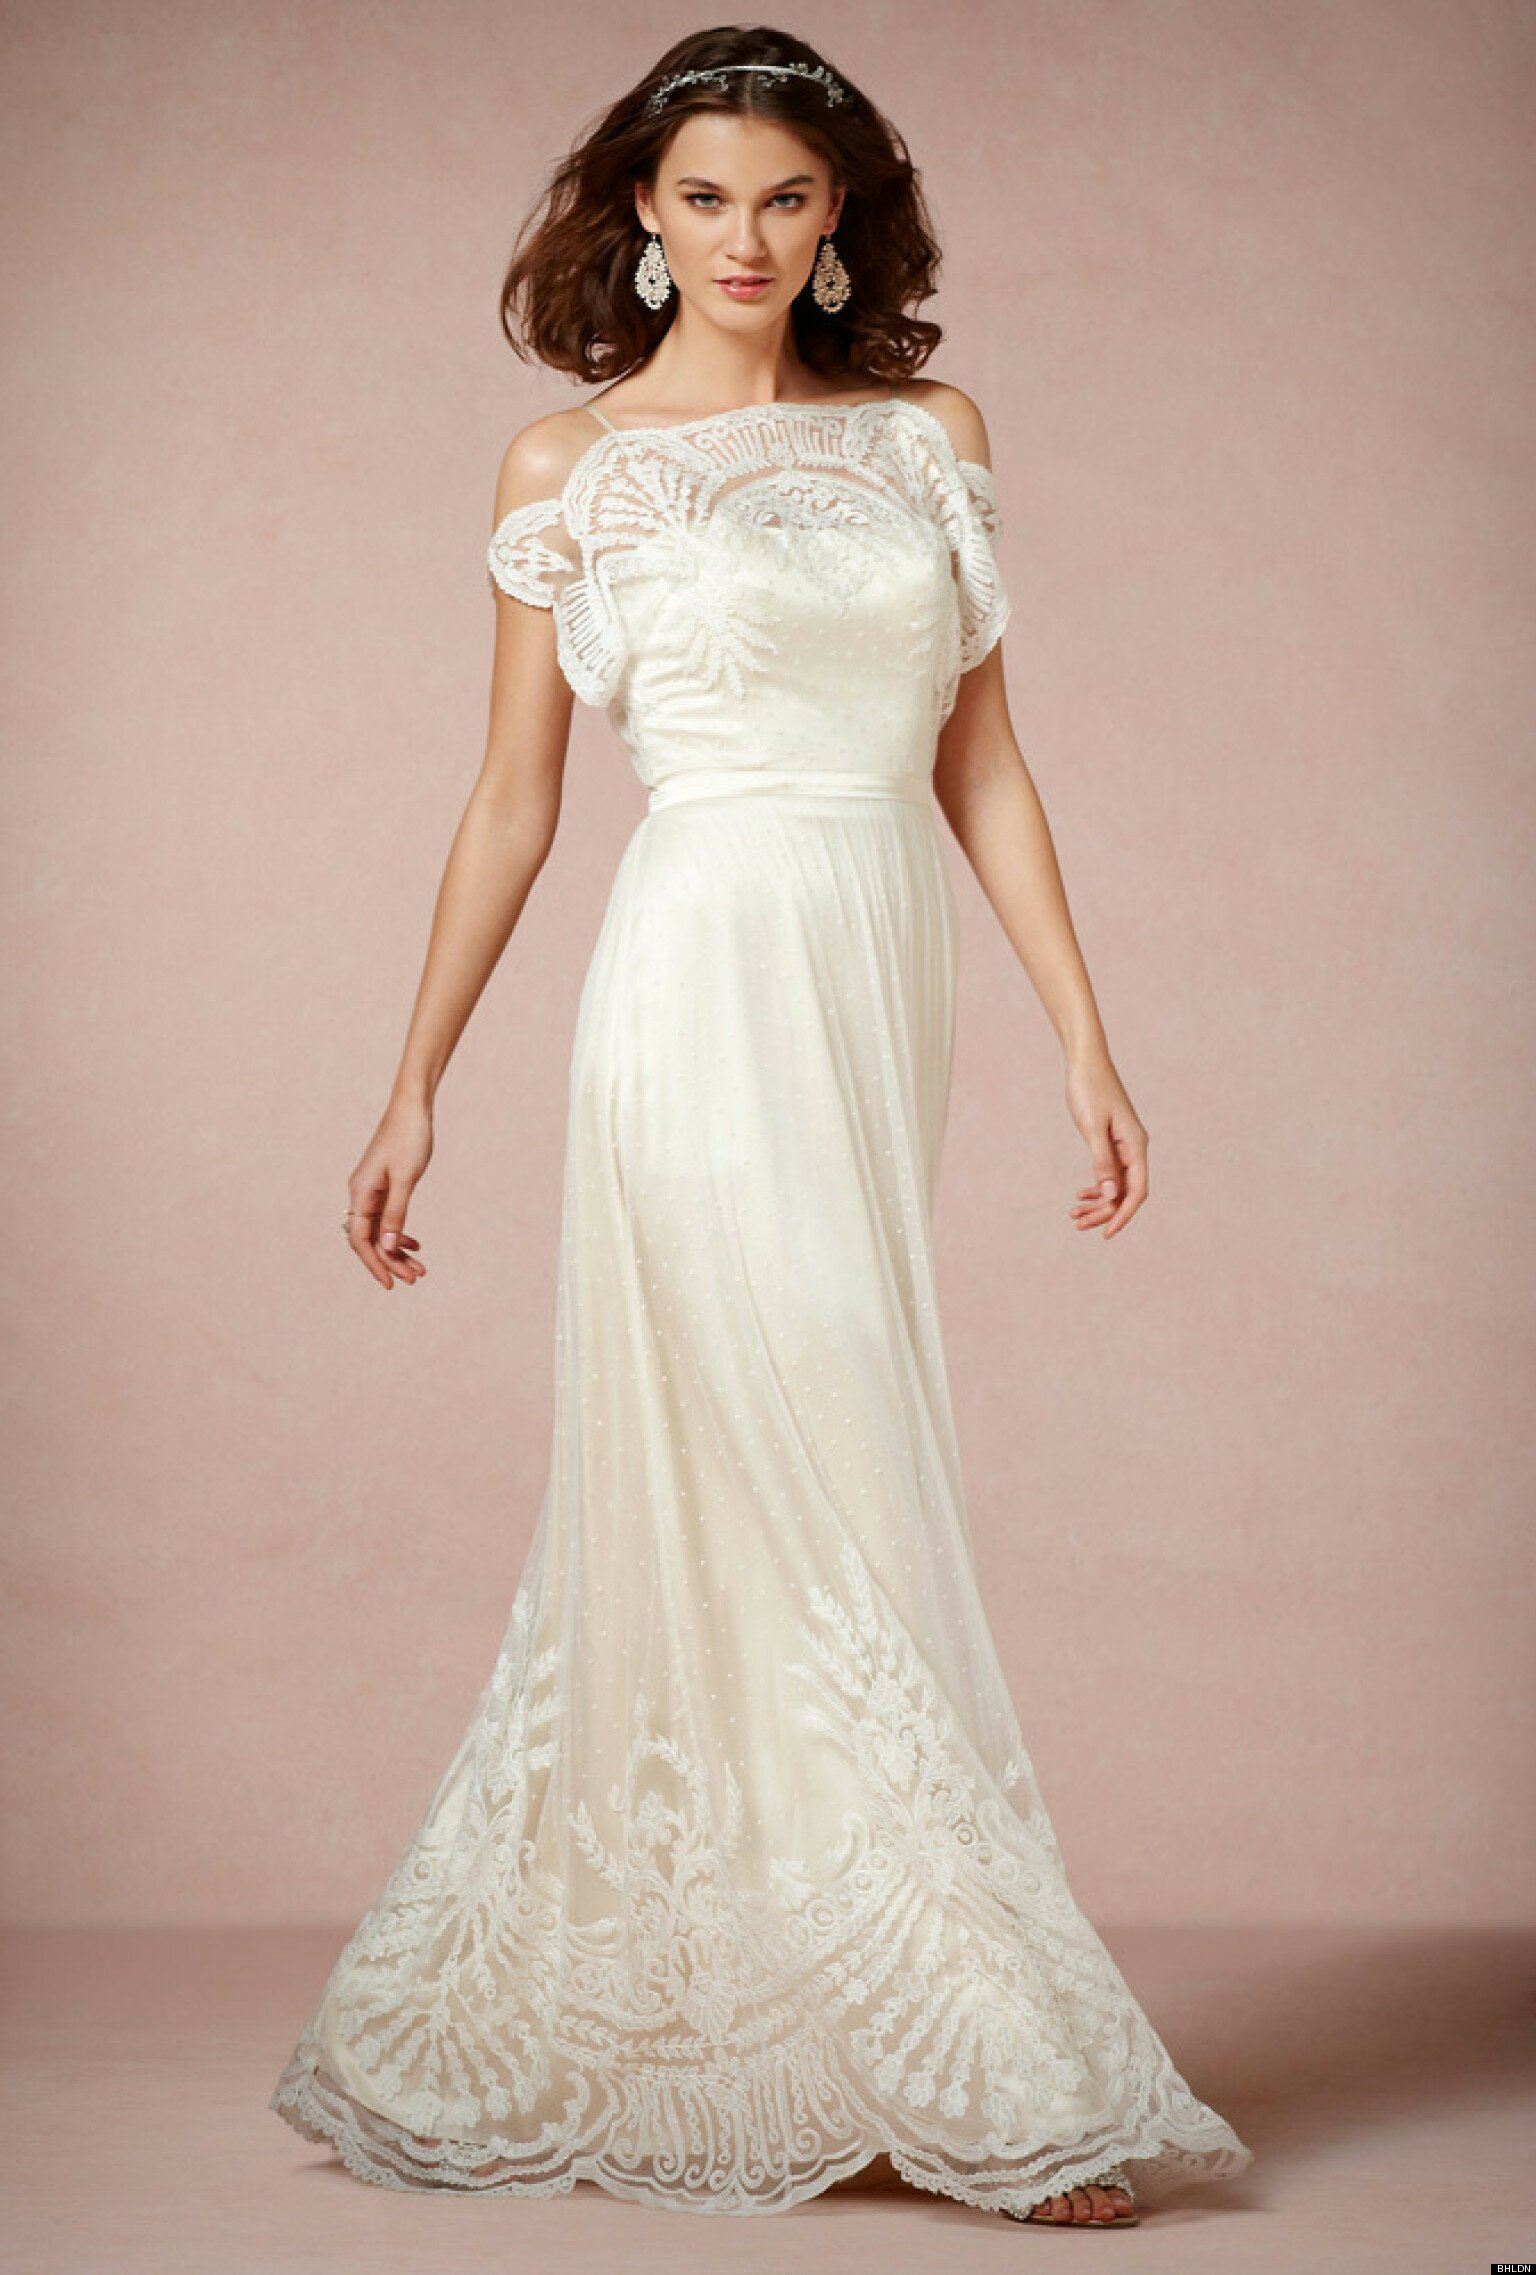 Older Women Wedding Dresses